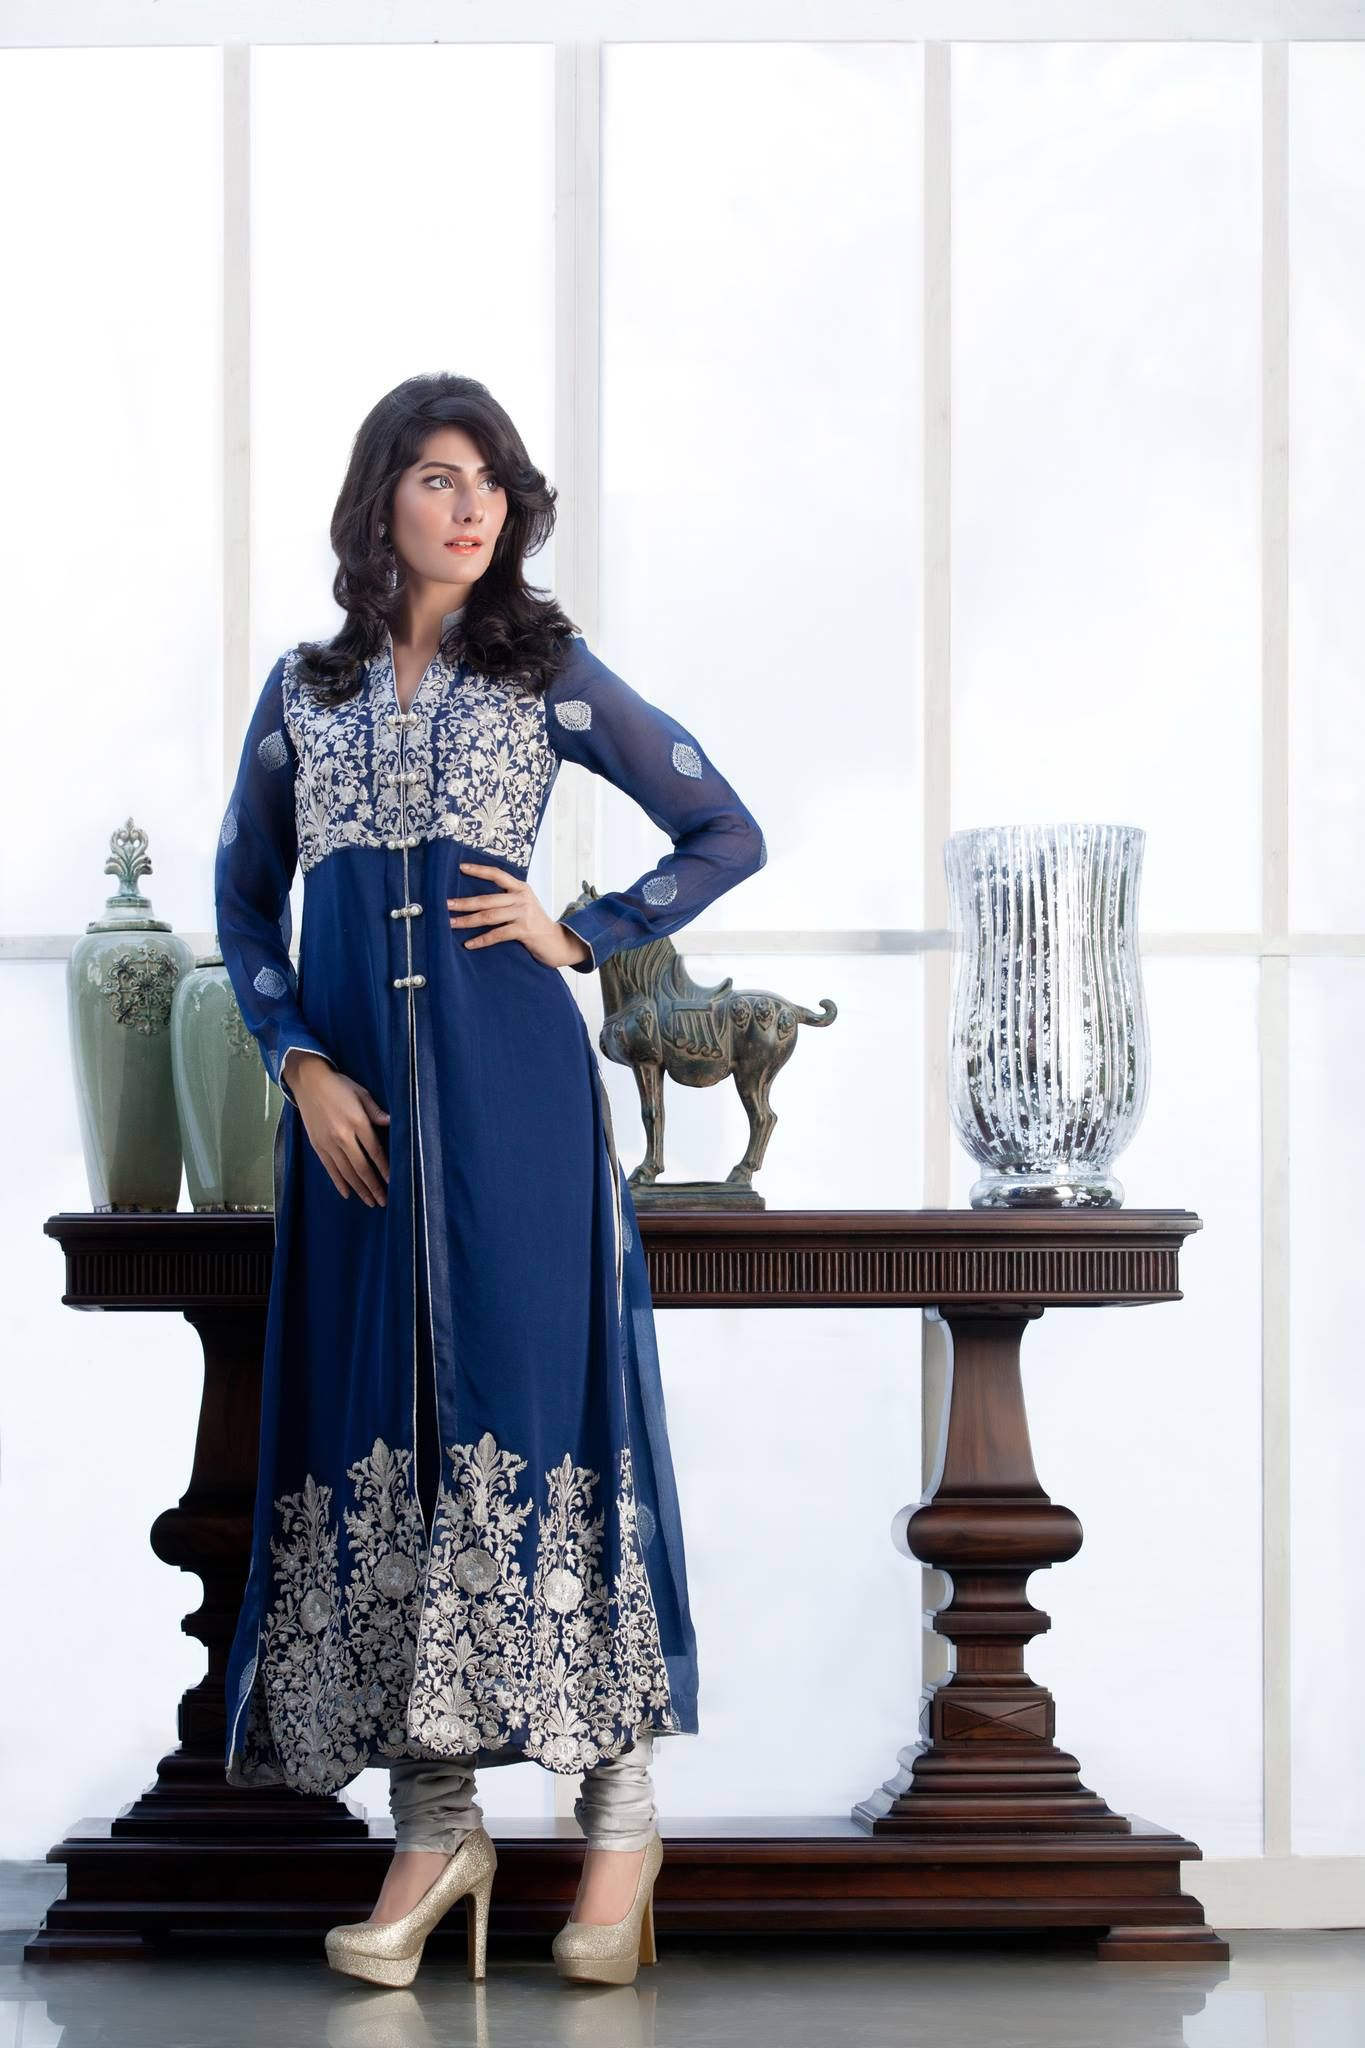 8b9ce154a5 Retailer & Wholesaler of Brands Embroidered Replica at Liberty Market,  Gulberg 3, Lahore